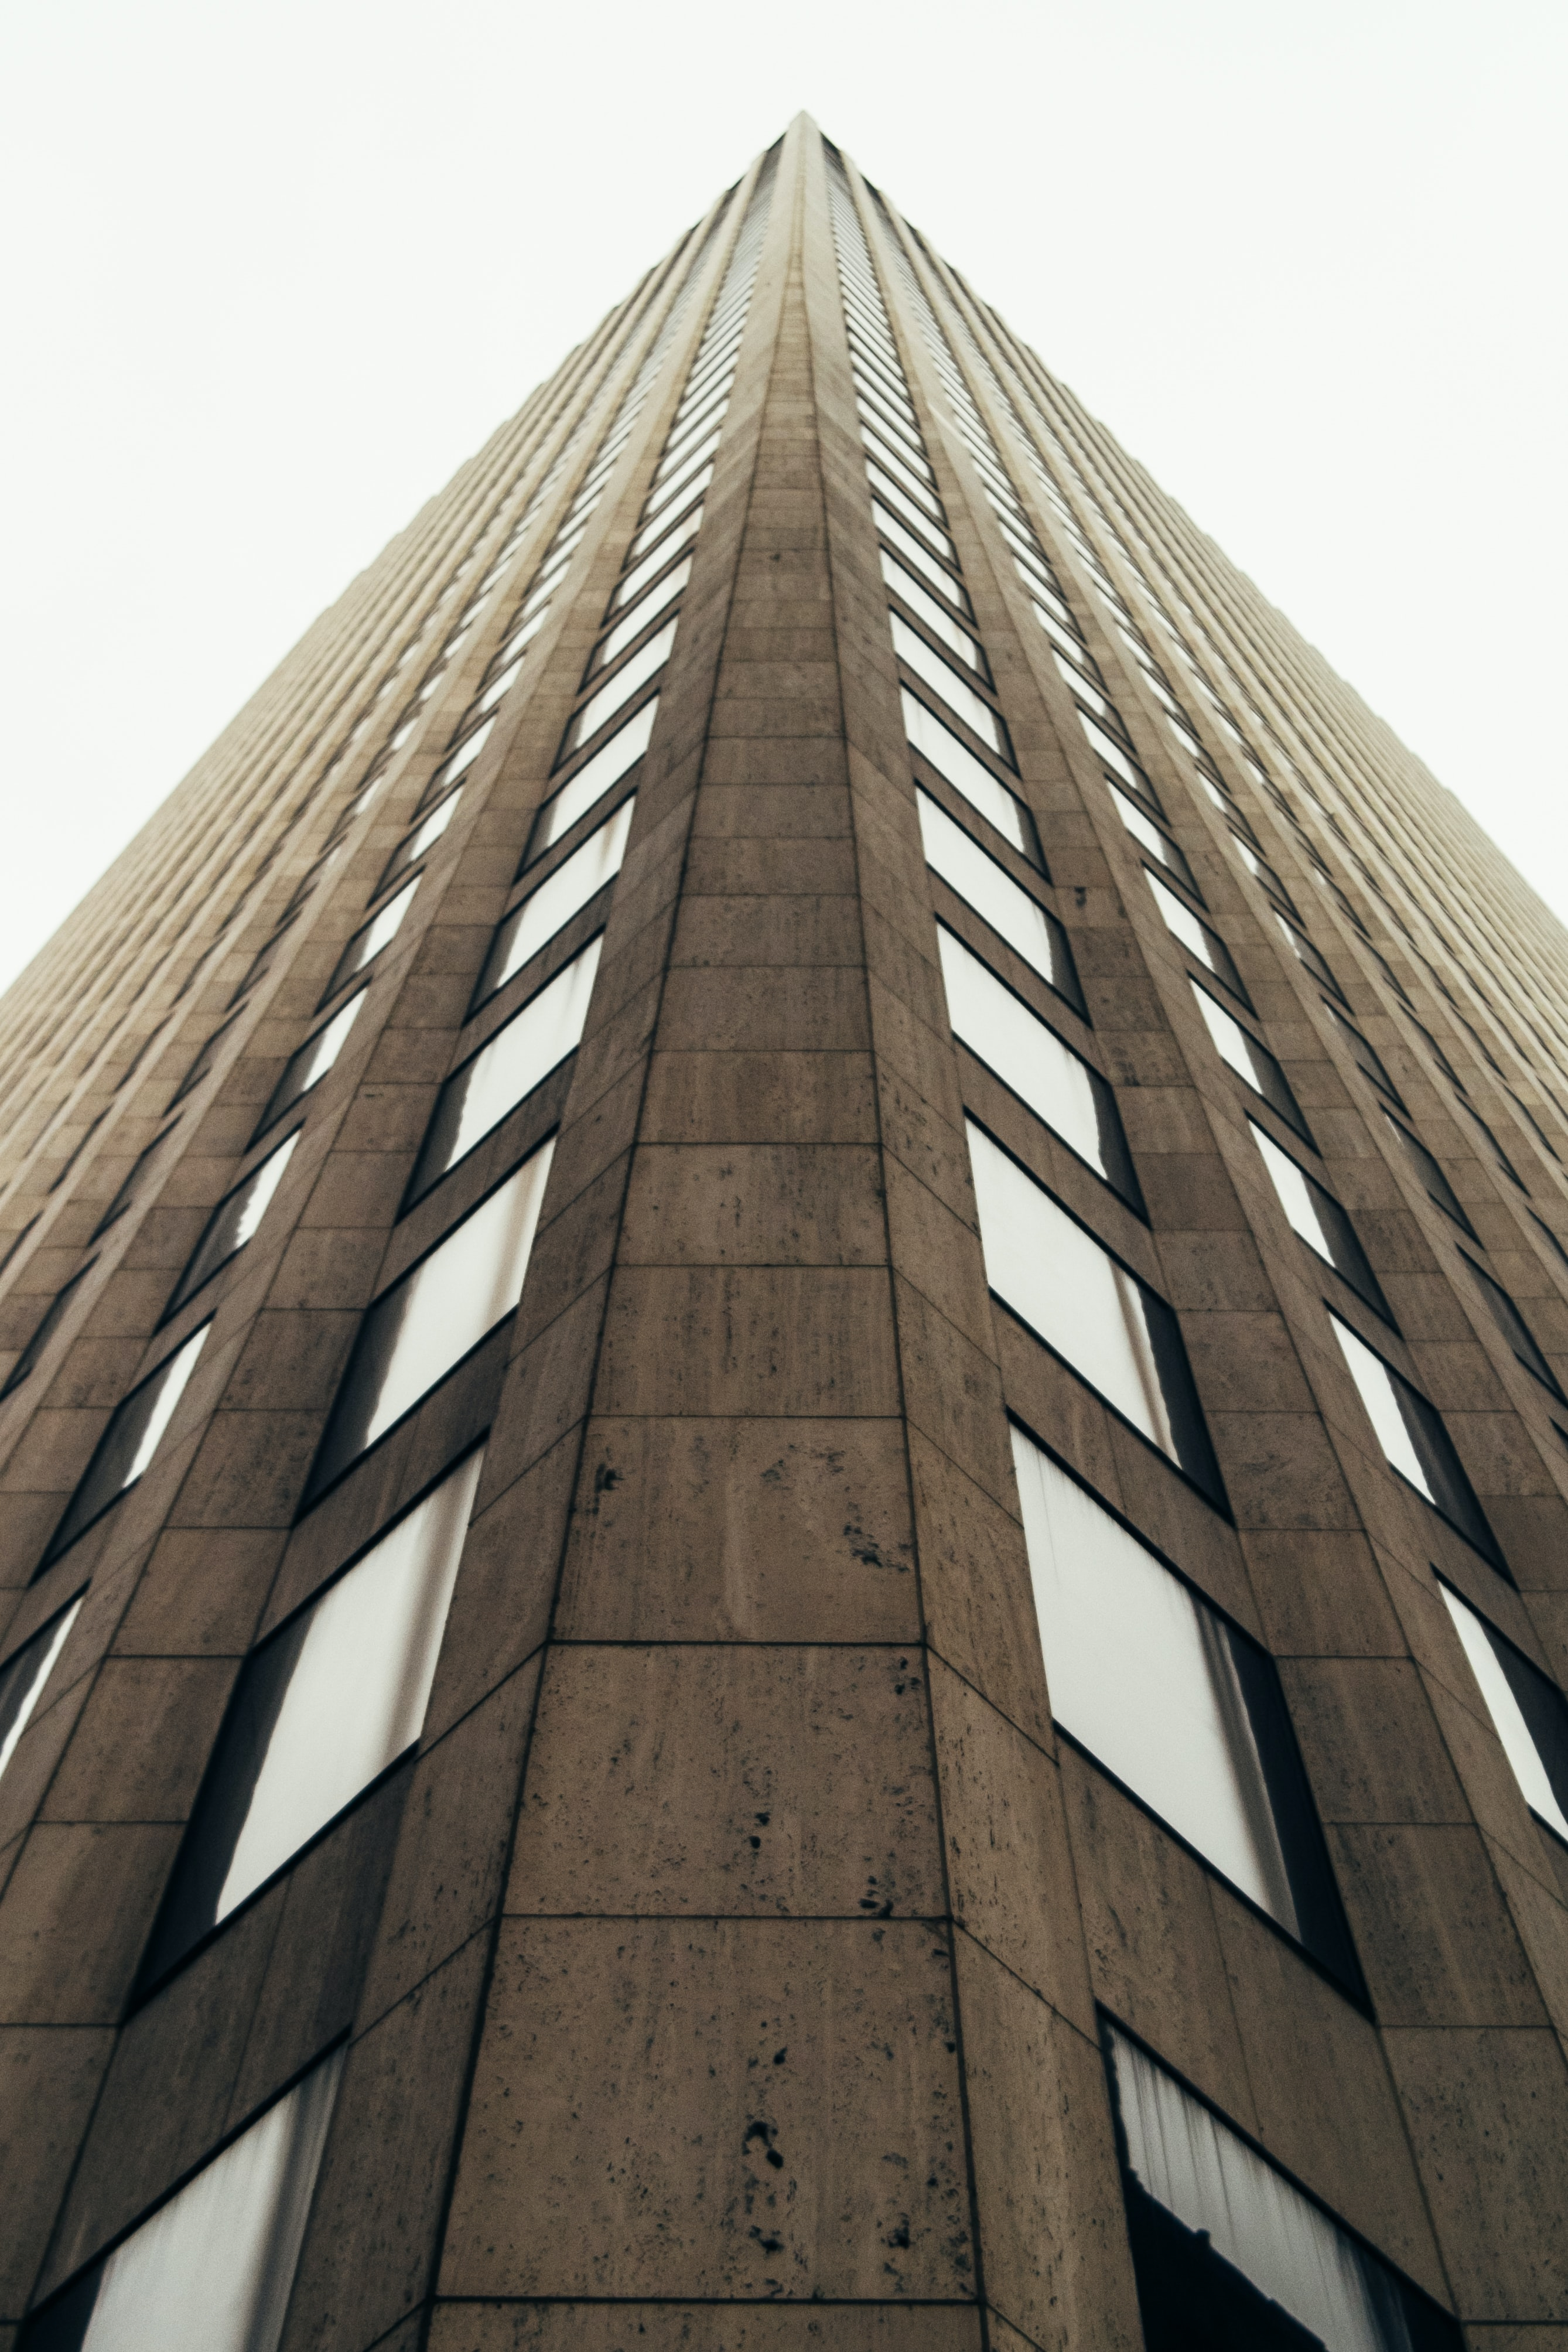 A low-angle shot of a monumental high-rise in New Orleans